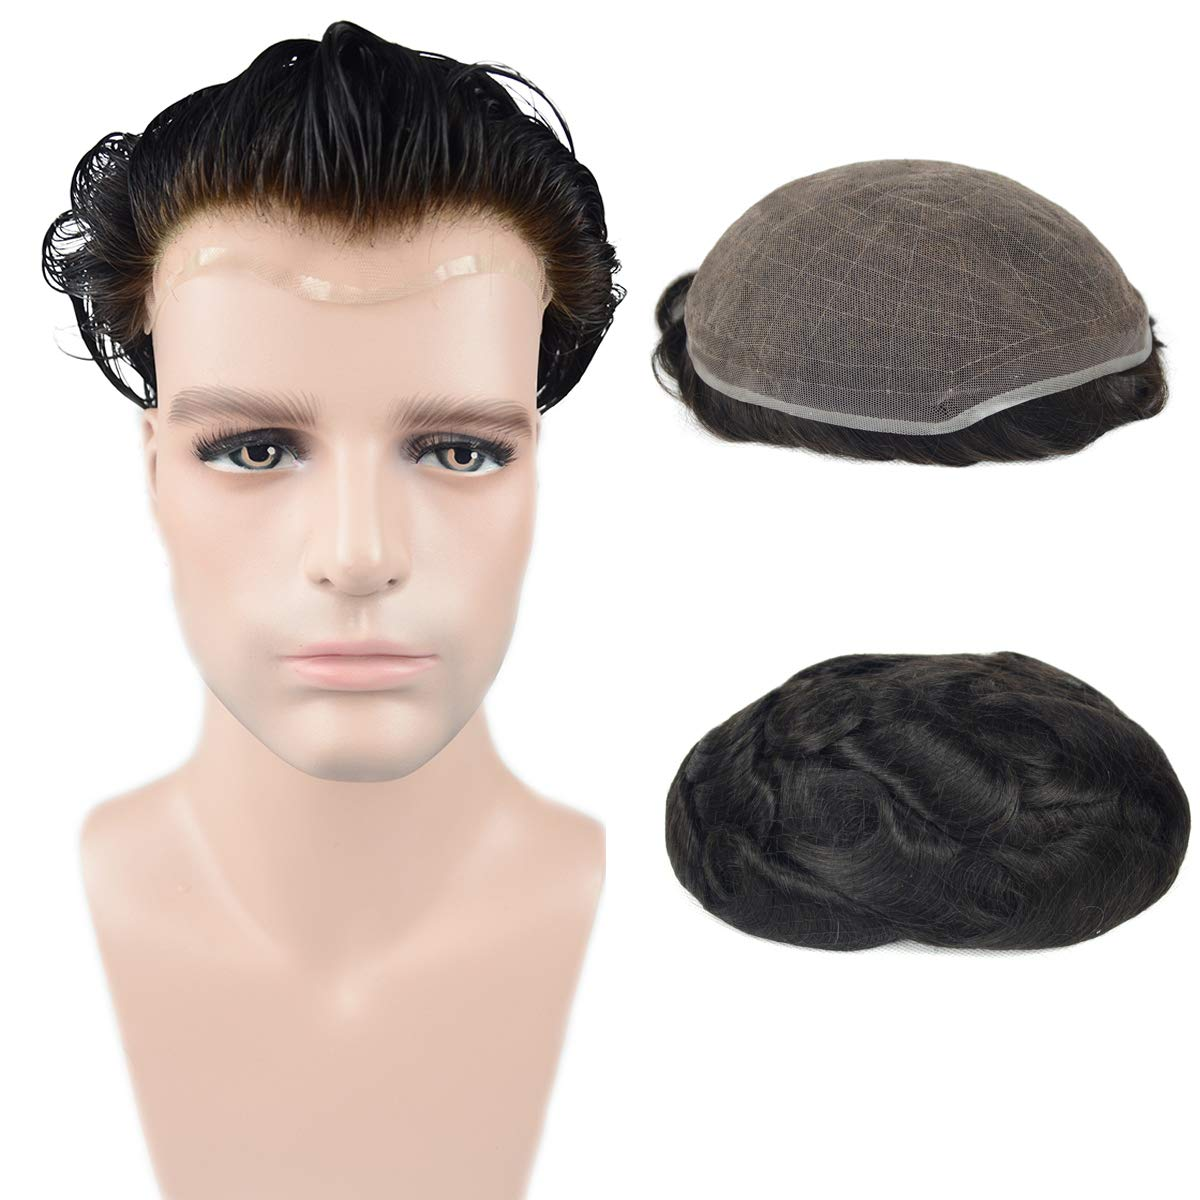 European Virgin Human Hair Natural Black Full Lace Base Man Toupee